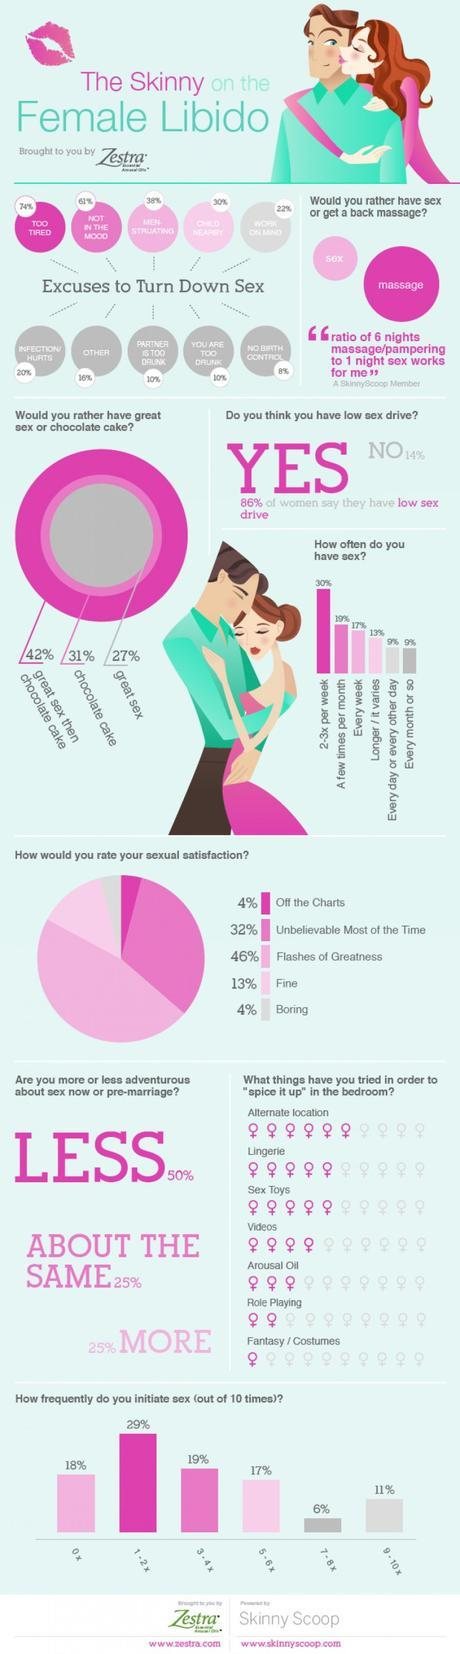 The skinny of the female libido infographic